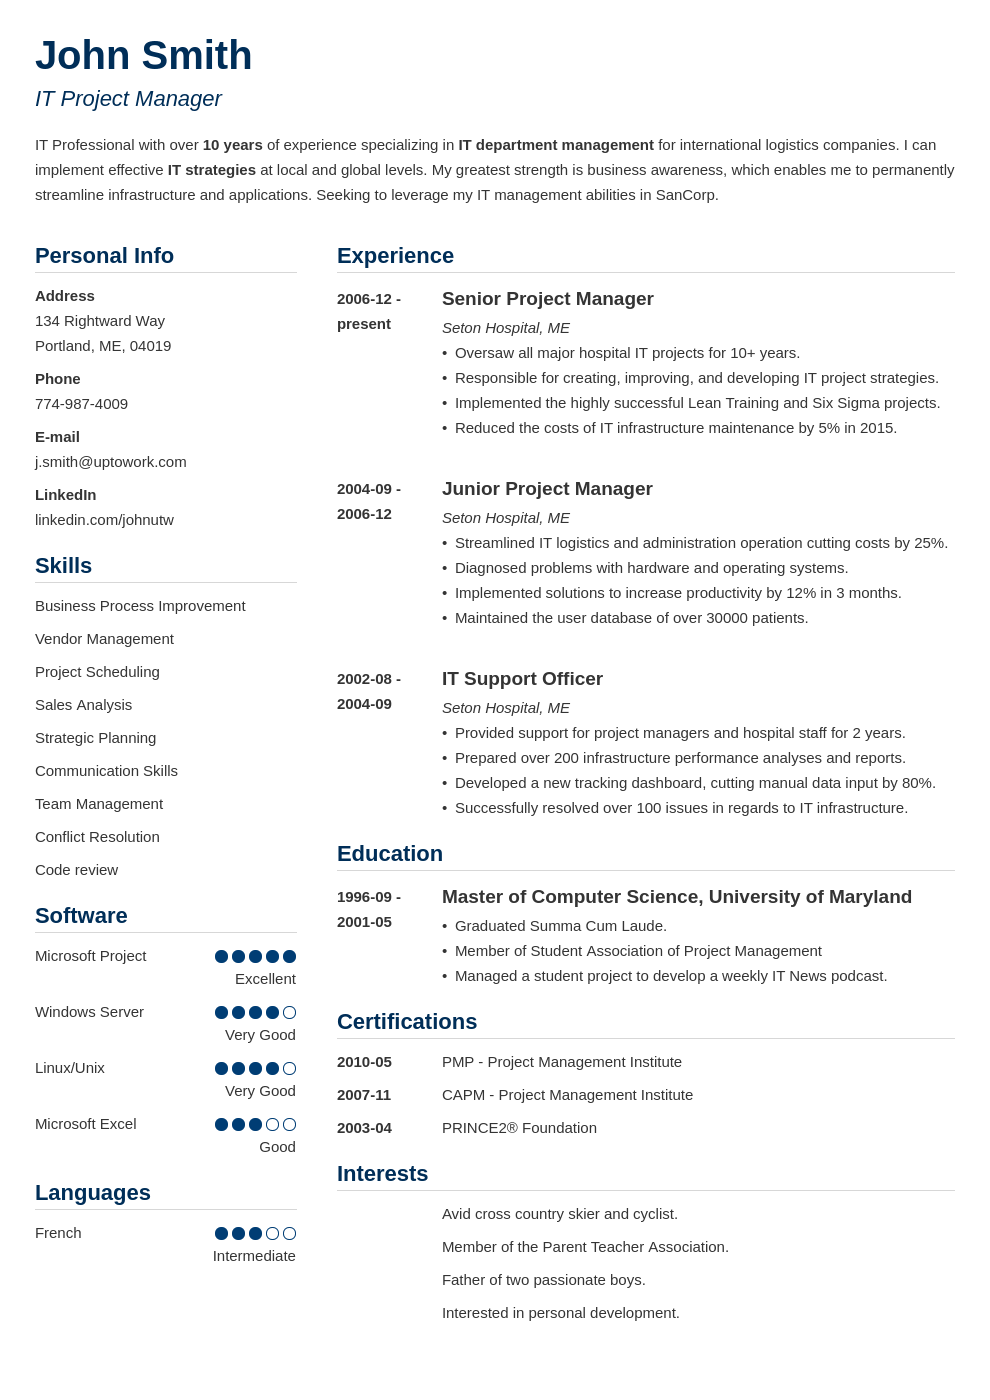 resume Resume Template Download 20 resume templates download create your in 5 minutes us recommended professional template simple